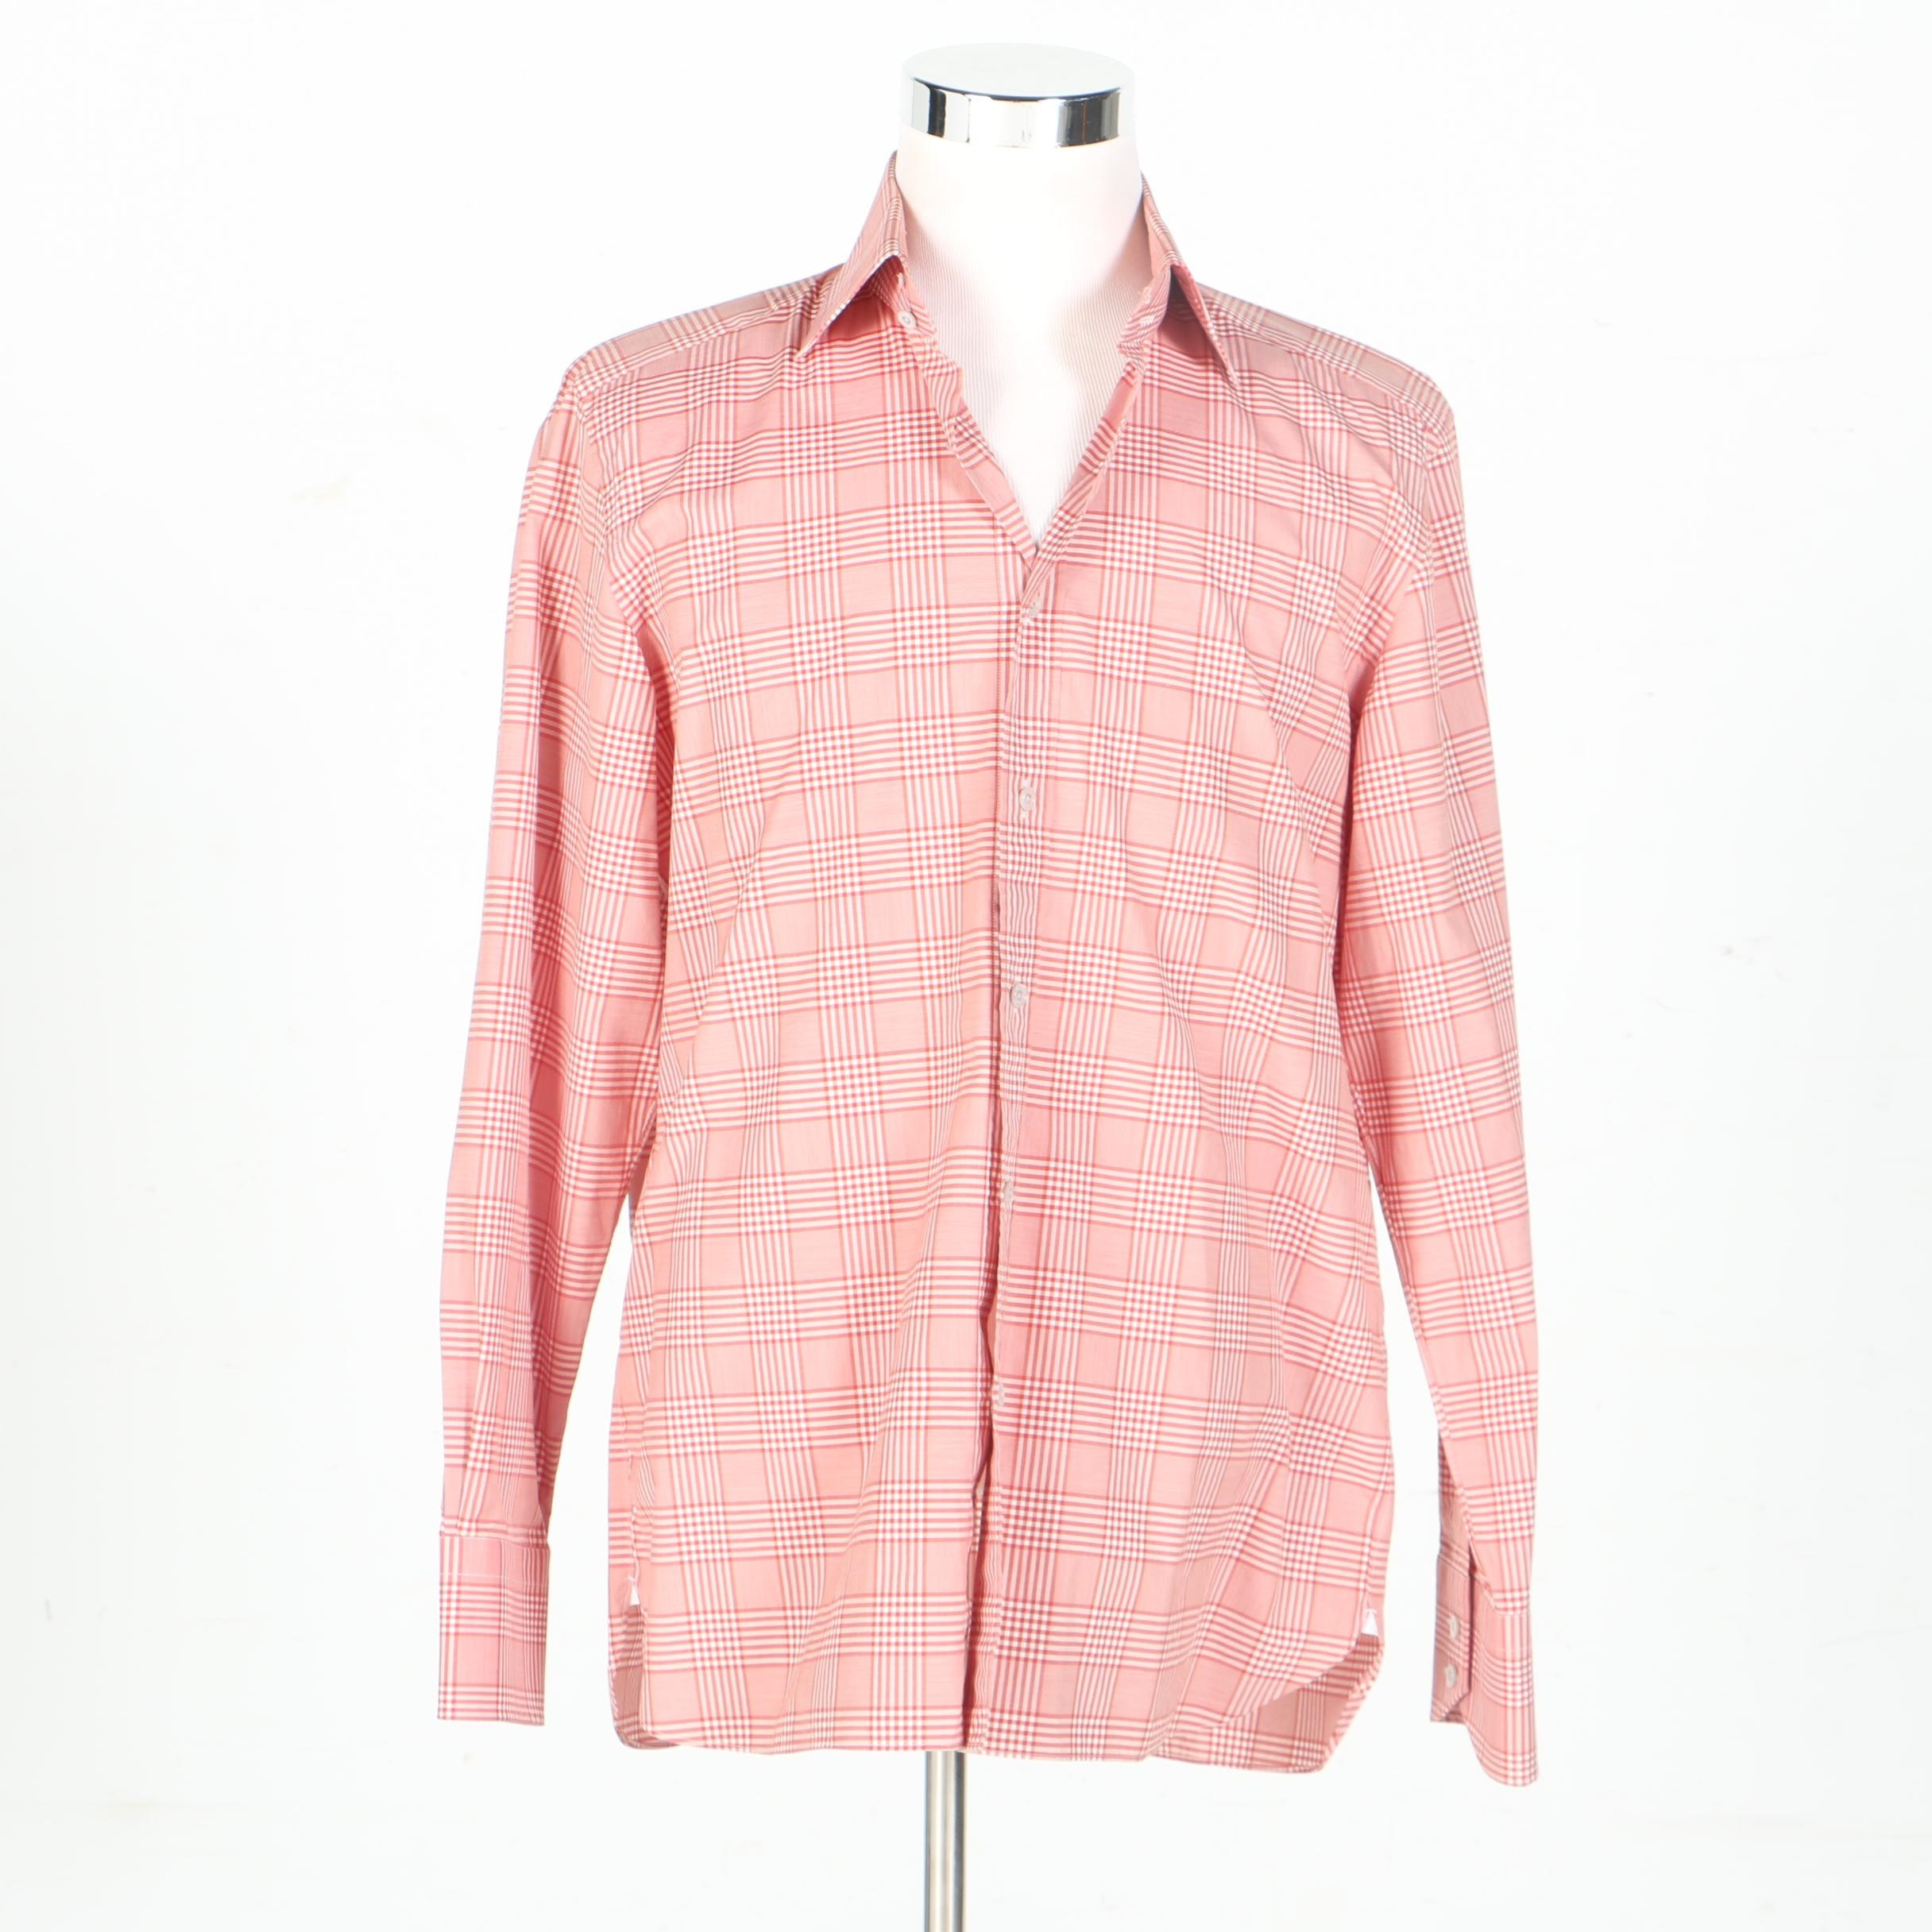 Tom Ford Button Up Top